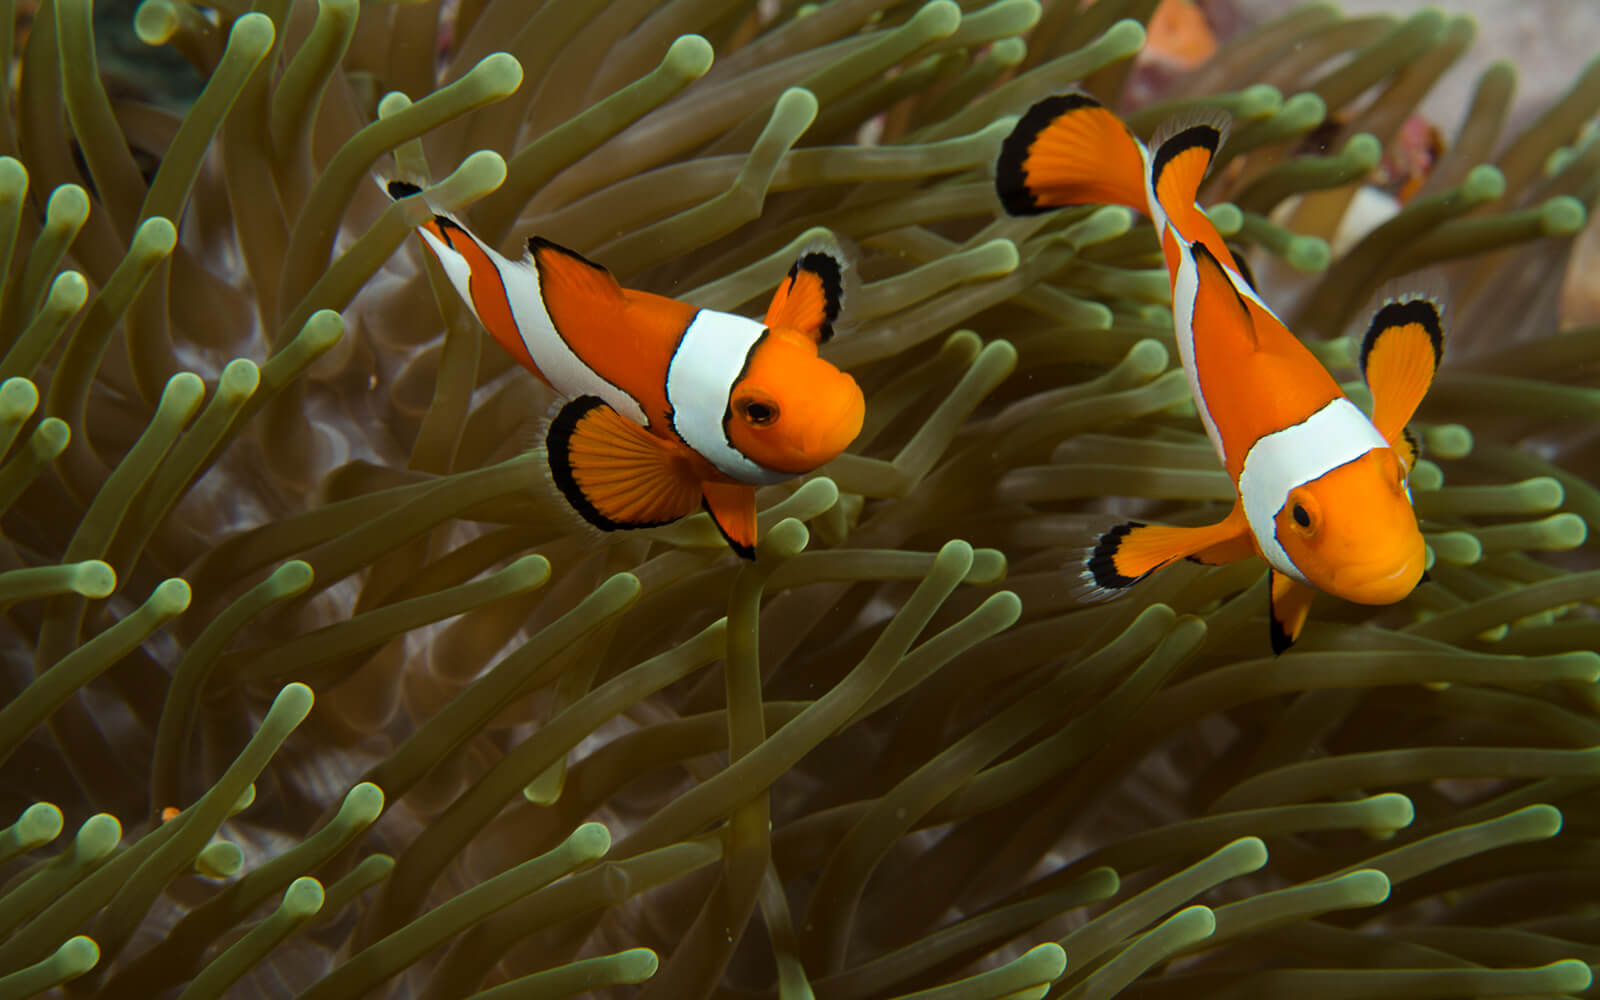 Clownfish in anemone - photo credit: The Ocean Agency